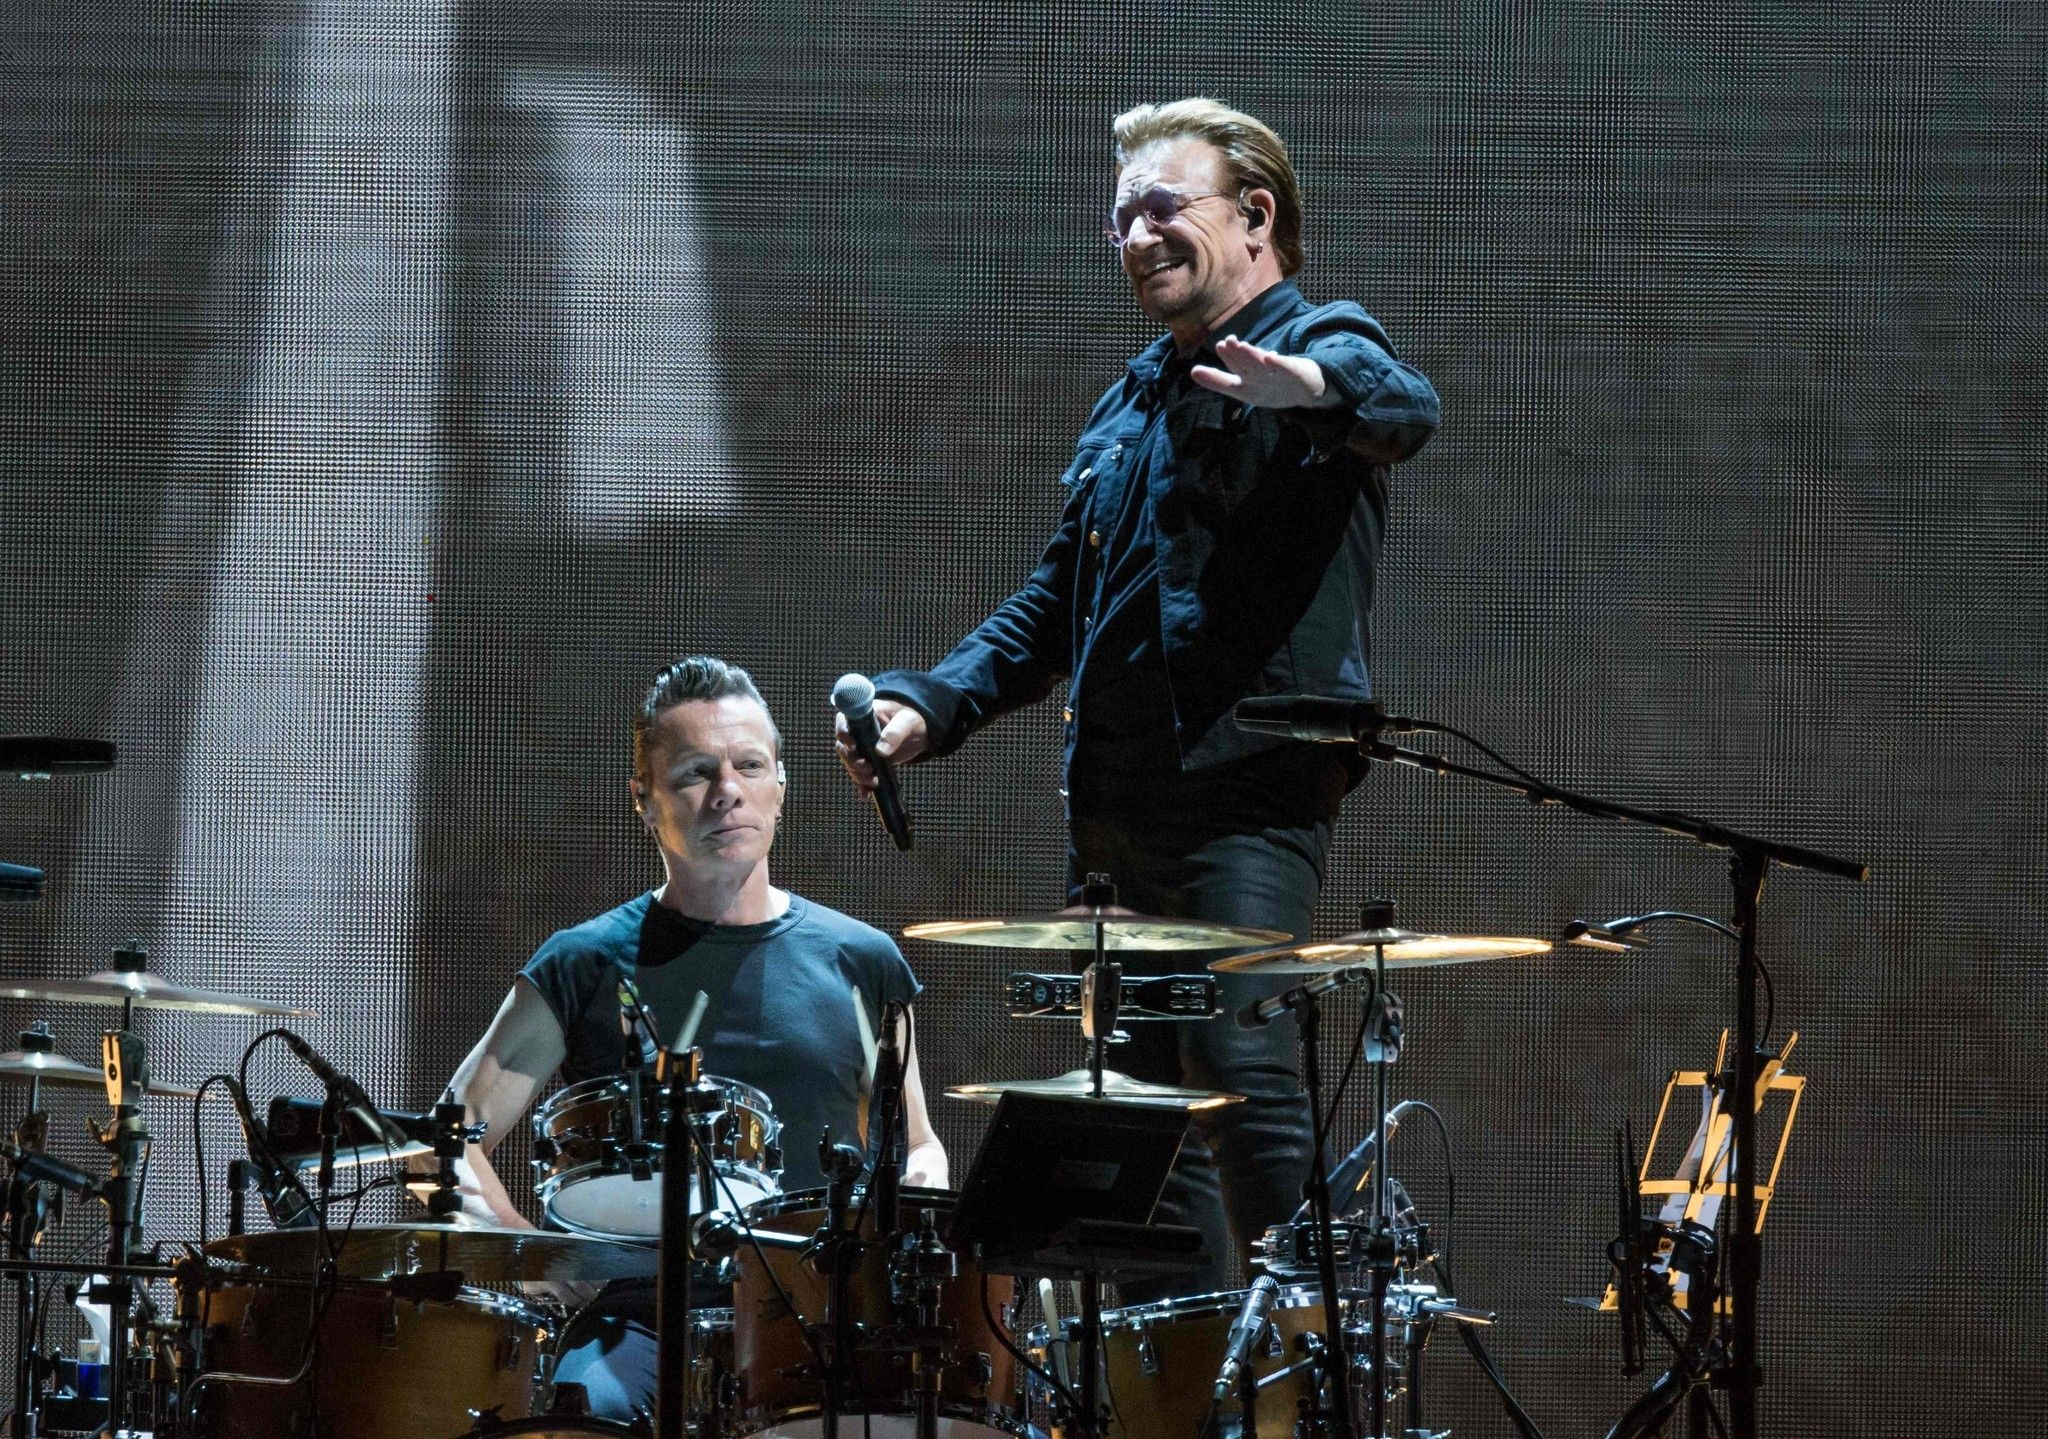 U2, Ed Sheeran cancel St. Louis show due to protests